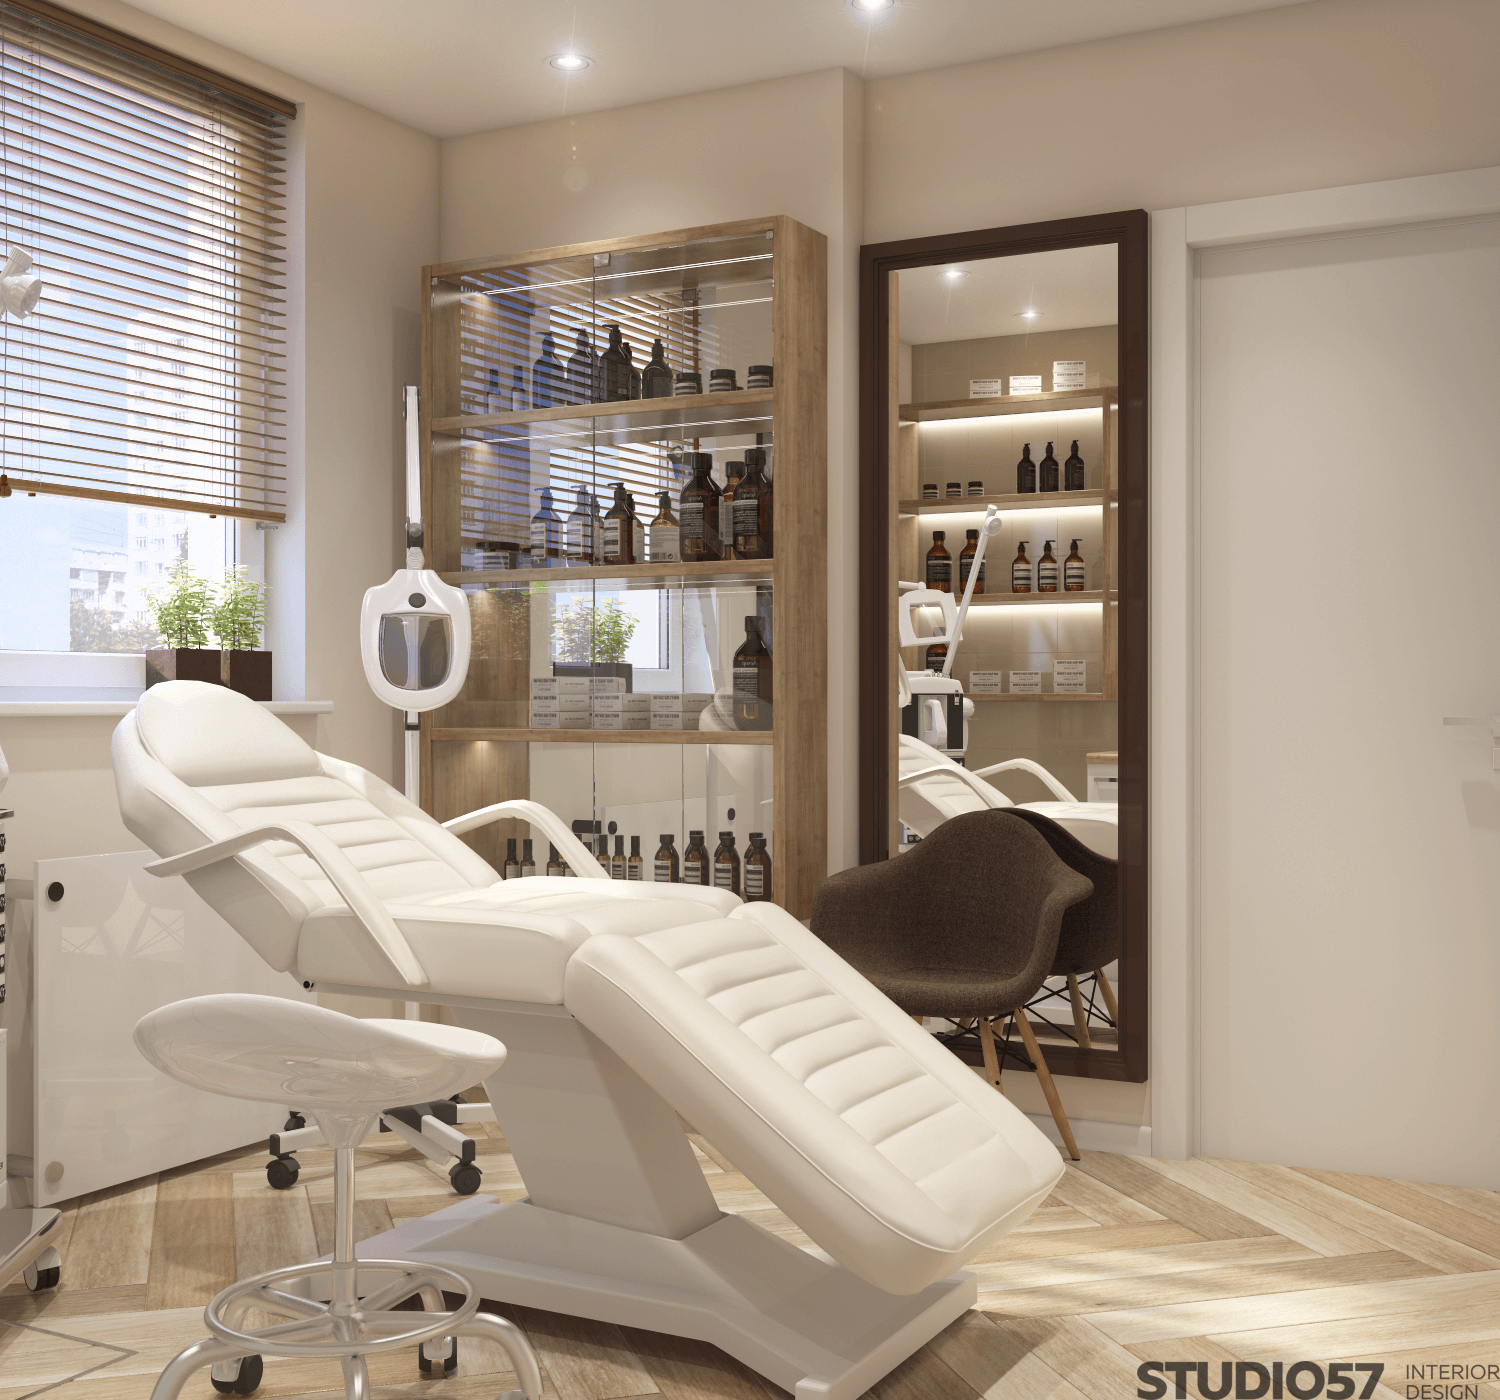 Arrangement of furniture in the beauty salon